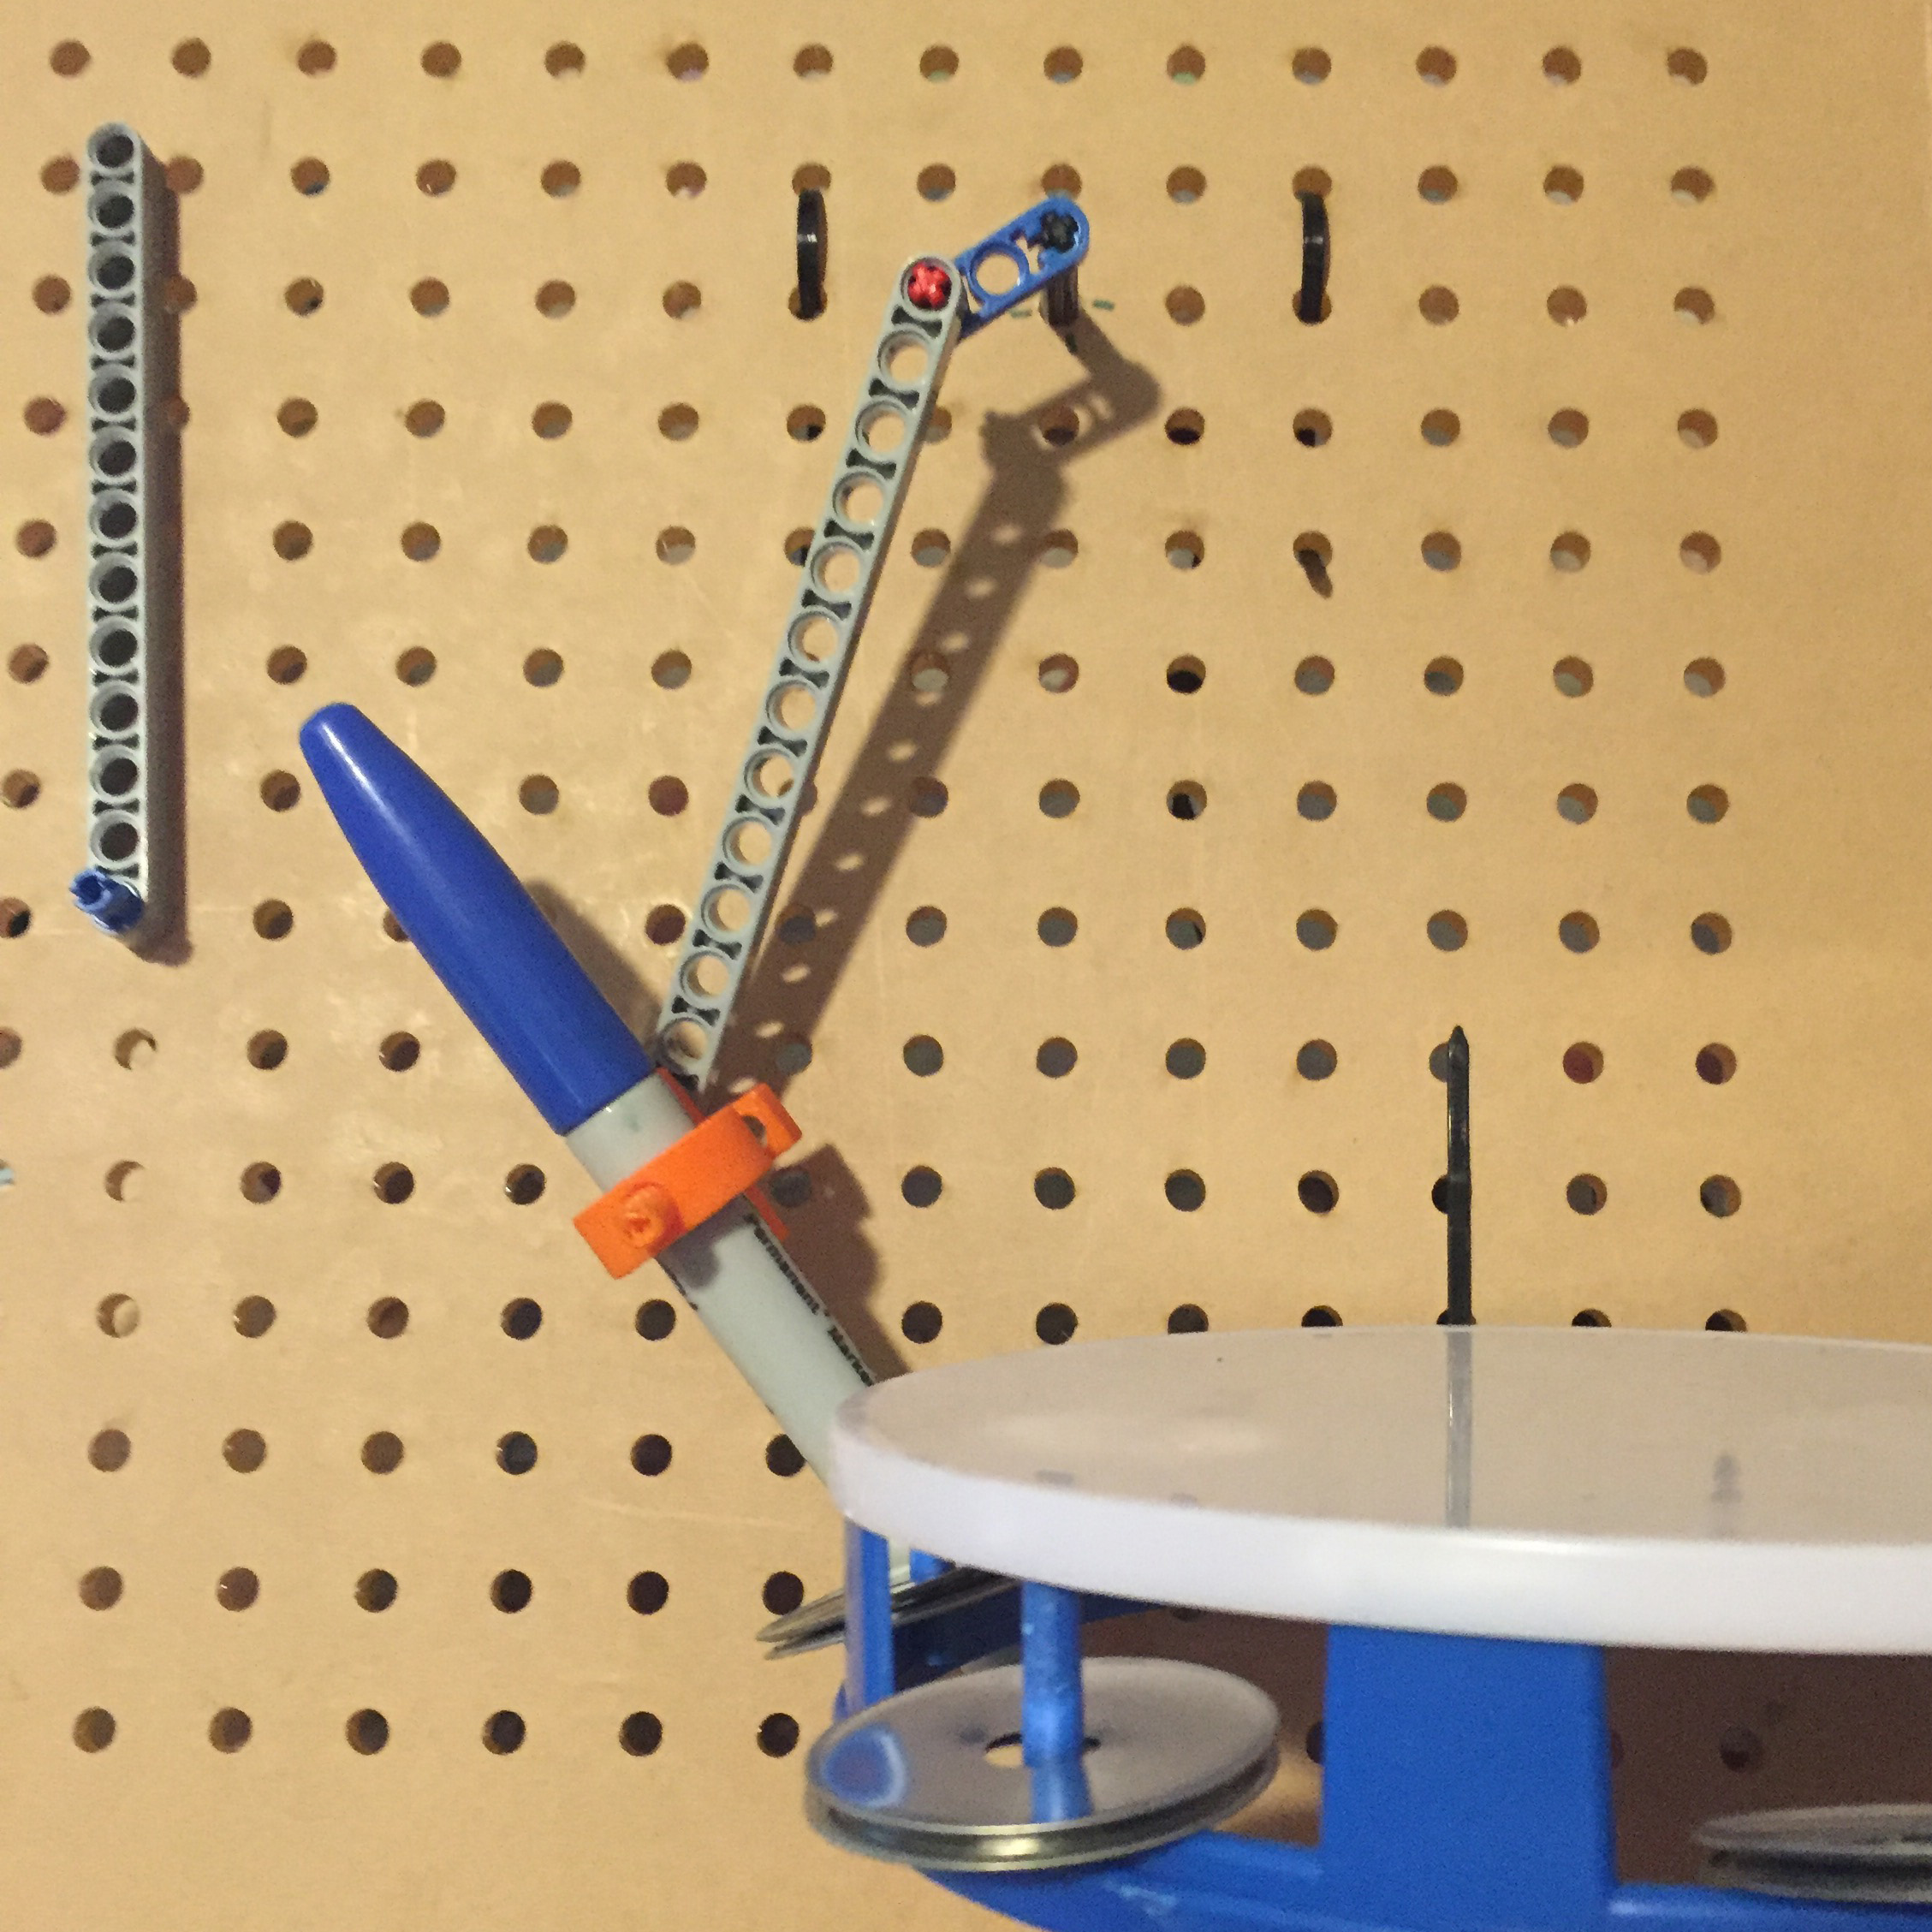 Lasercut prototype board for Musical Linkages, an activity developed by the Exploratorium in which you use motorized lego pieces that can be attached anywhere on a pegboard to create music making machines.